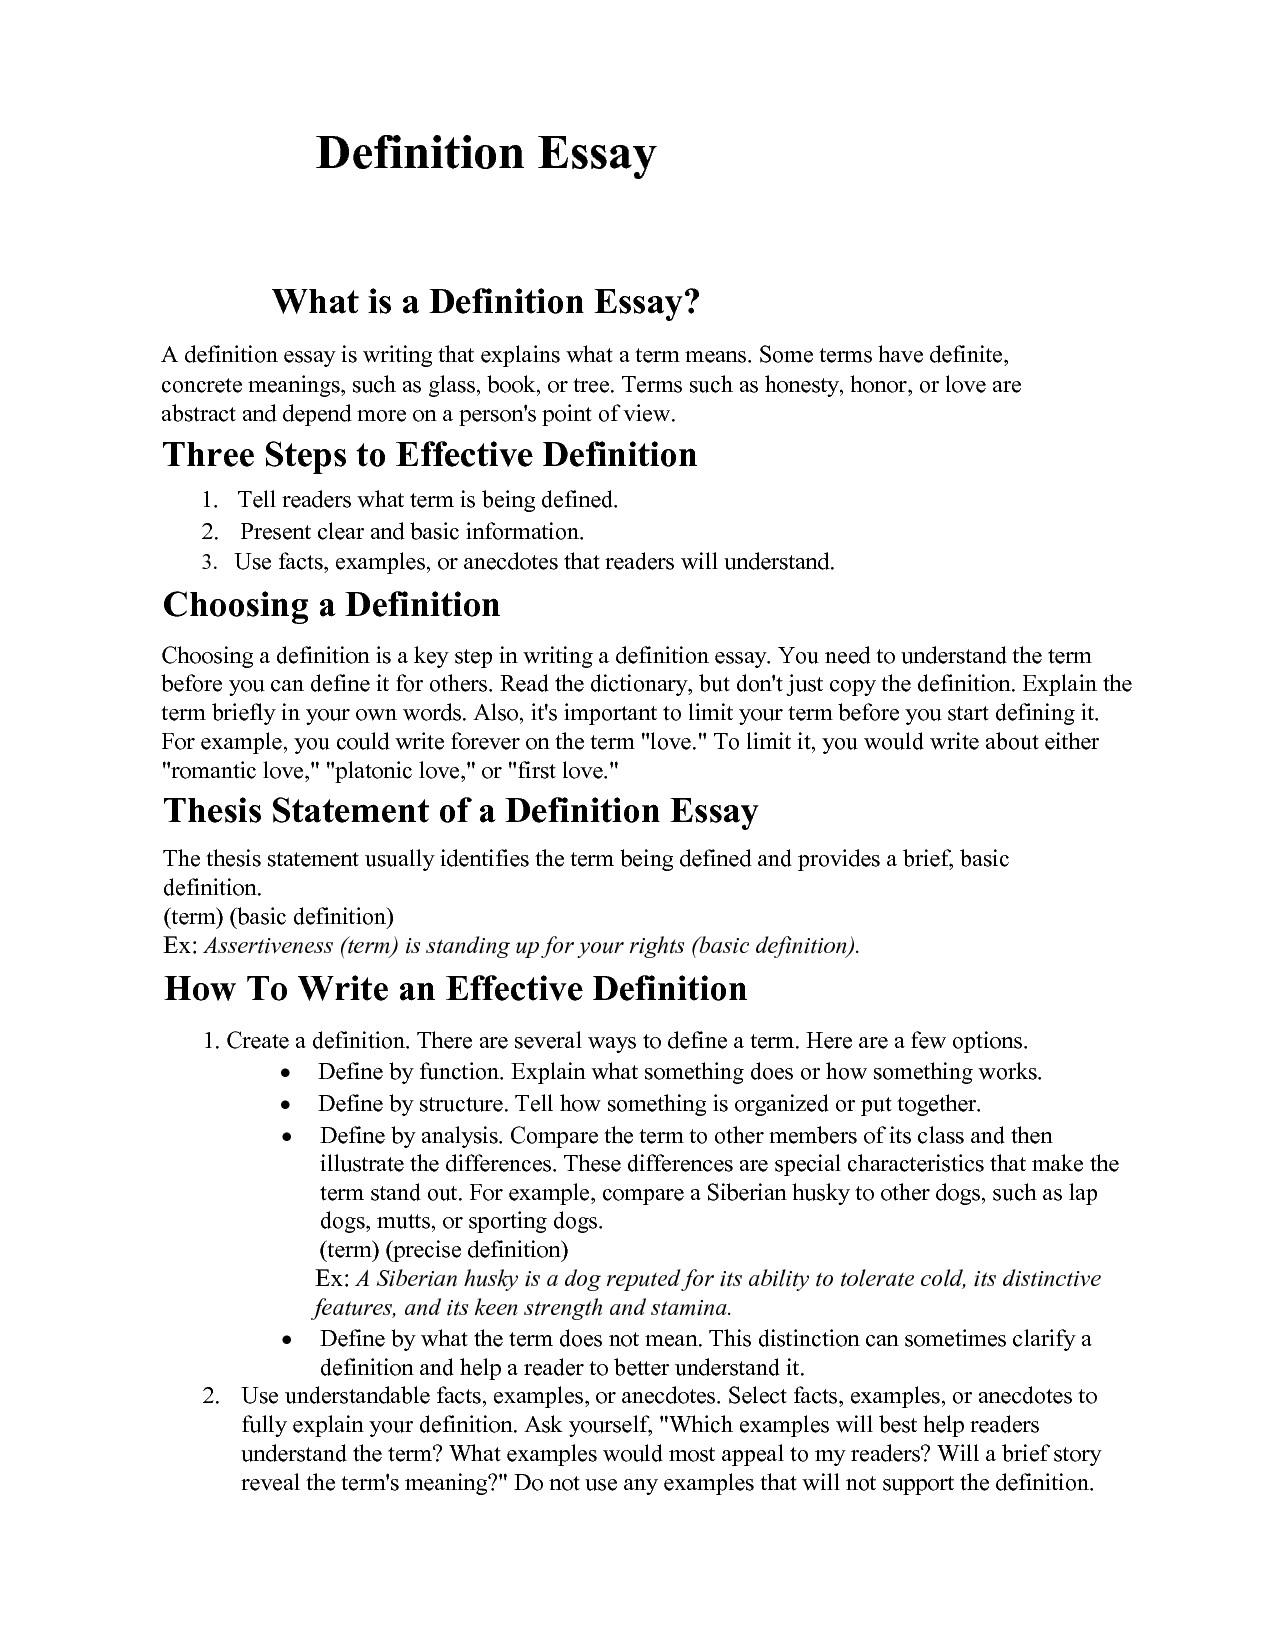 thesis statement for definition essay how to write a definition  bunch ideas of controversial essay topics for research paper bunch ideas of  controversial essay topics for